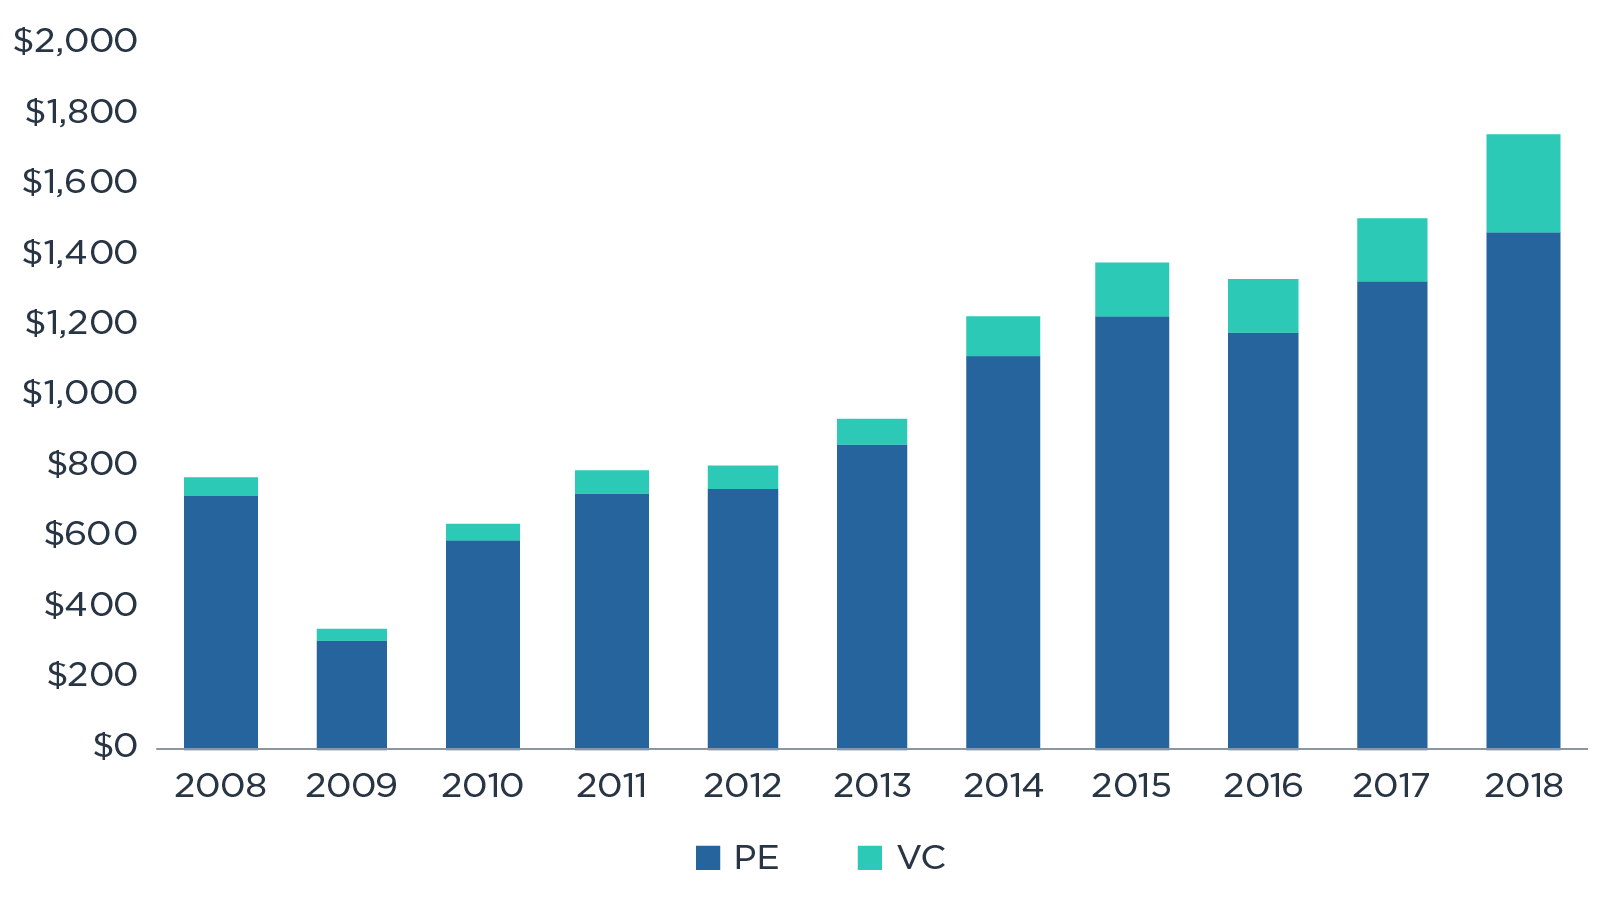 PE & VC deal value from 2008-2018